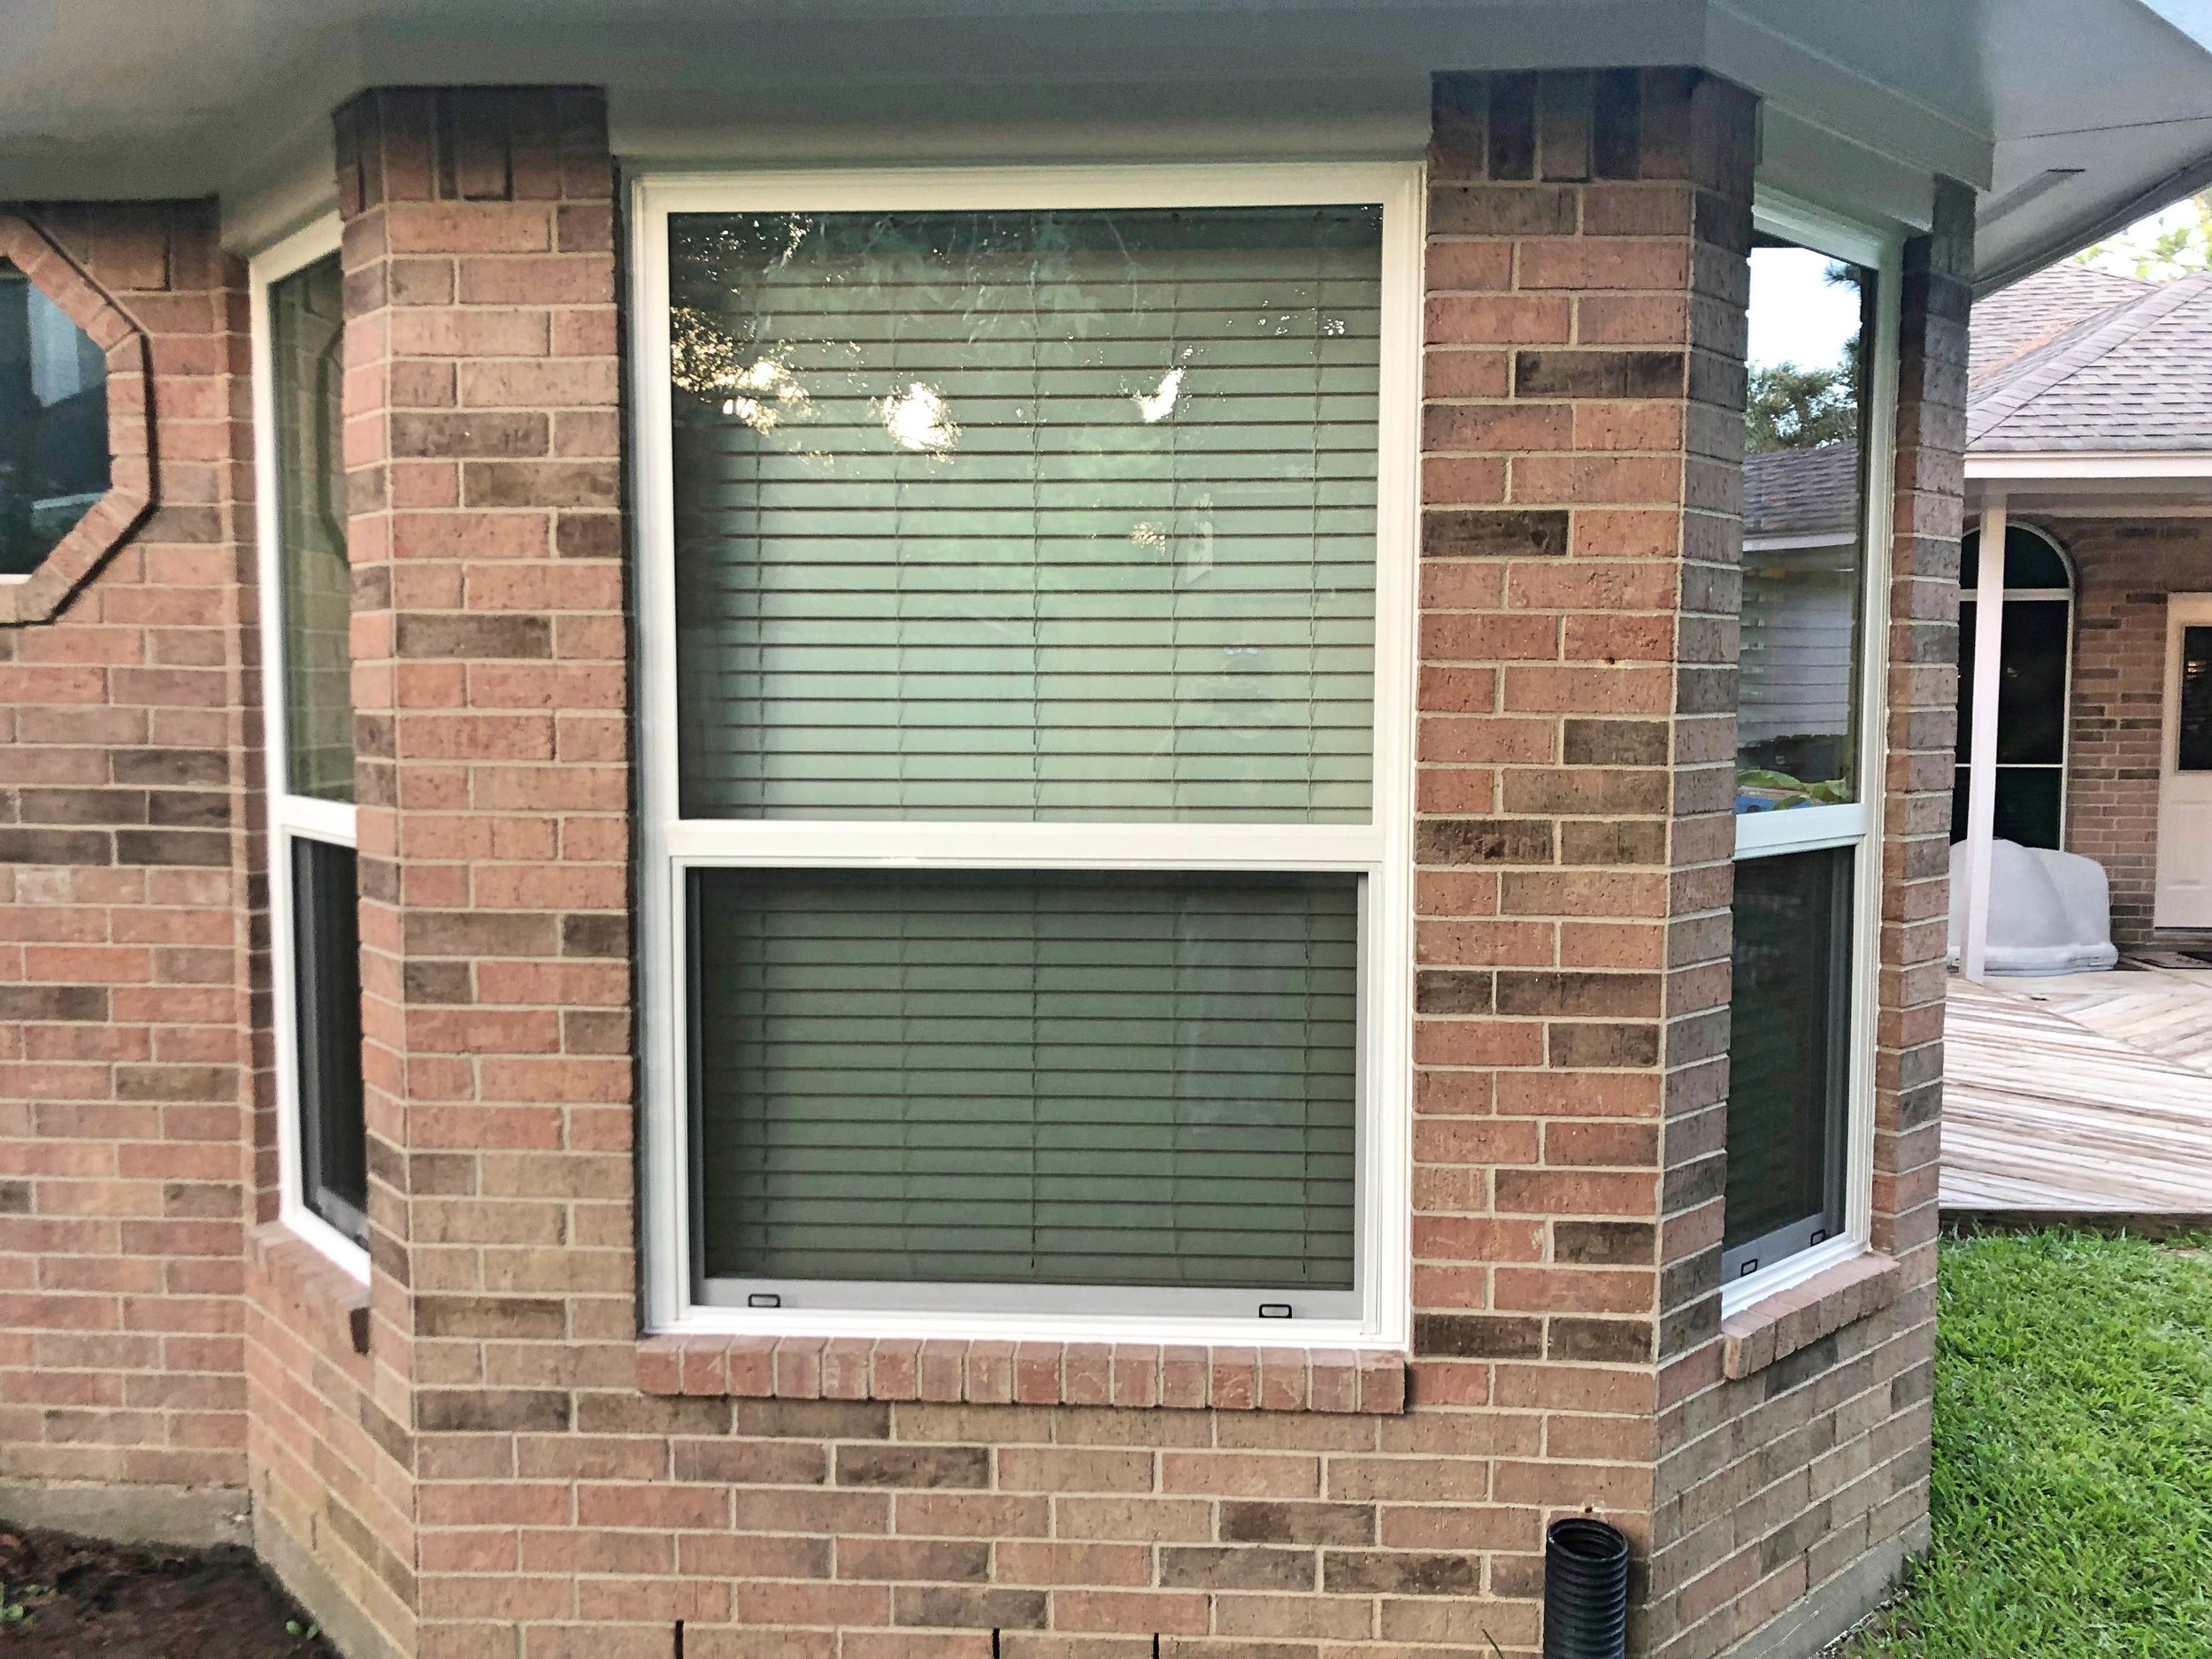 Custom Windows - This homeowner chose windows that are operating, so they open up to let a breeze in. They energy-efficient, sturdy, and built to last in Houston heat!